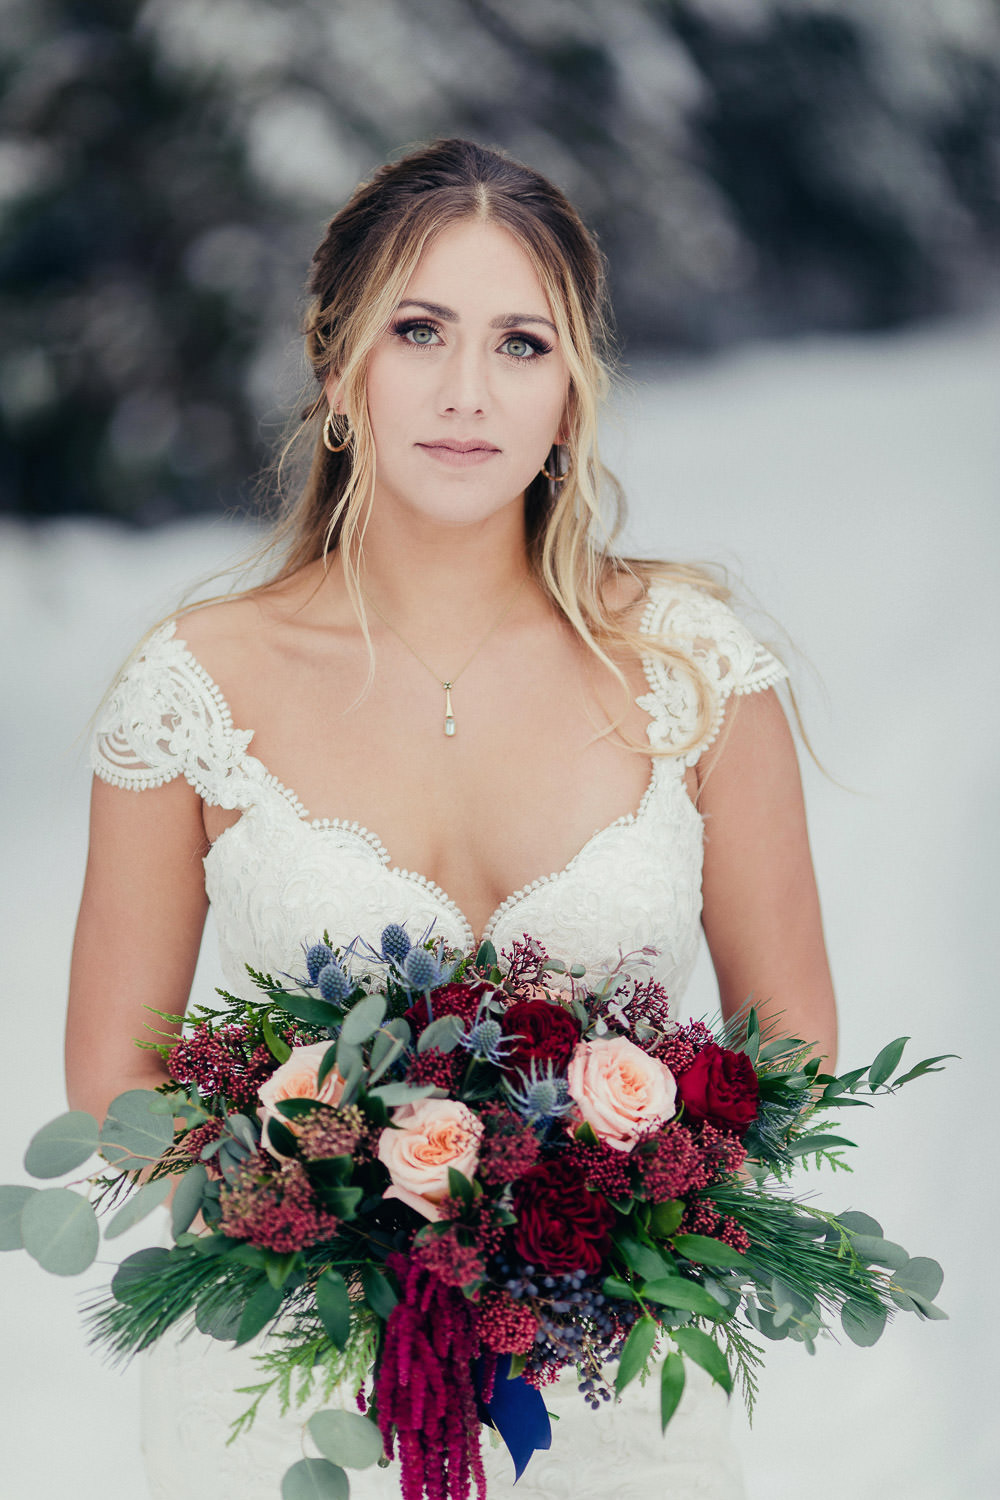 Winter bride holding stunning floral arrangement